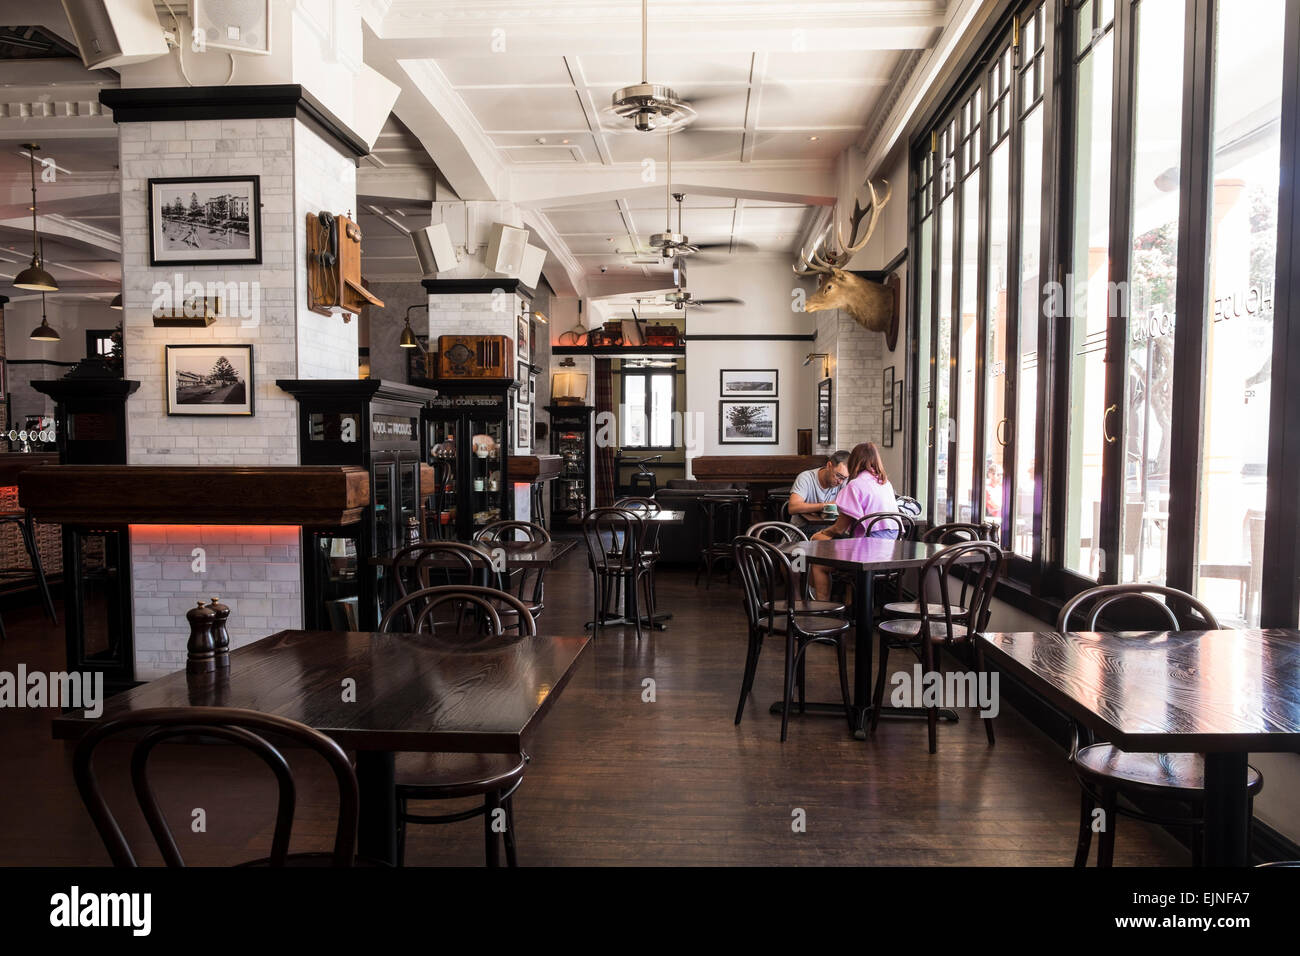 The Masonic Hotel Interior Of The Bar Restaurant Area With Old Stock Photo Alamy